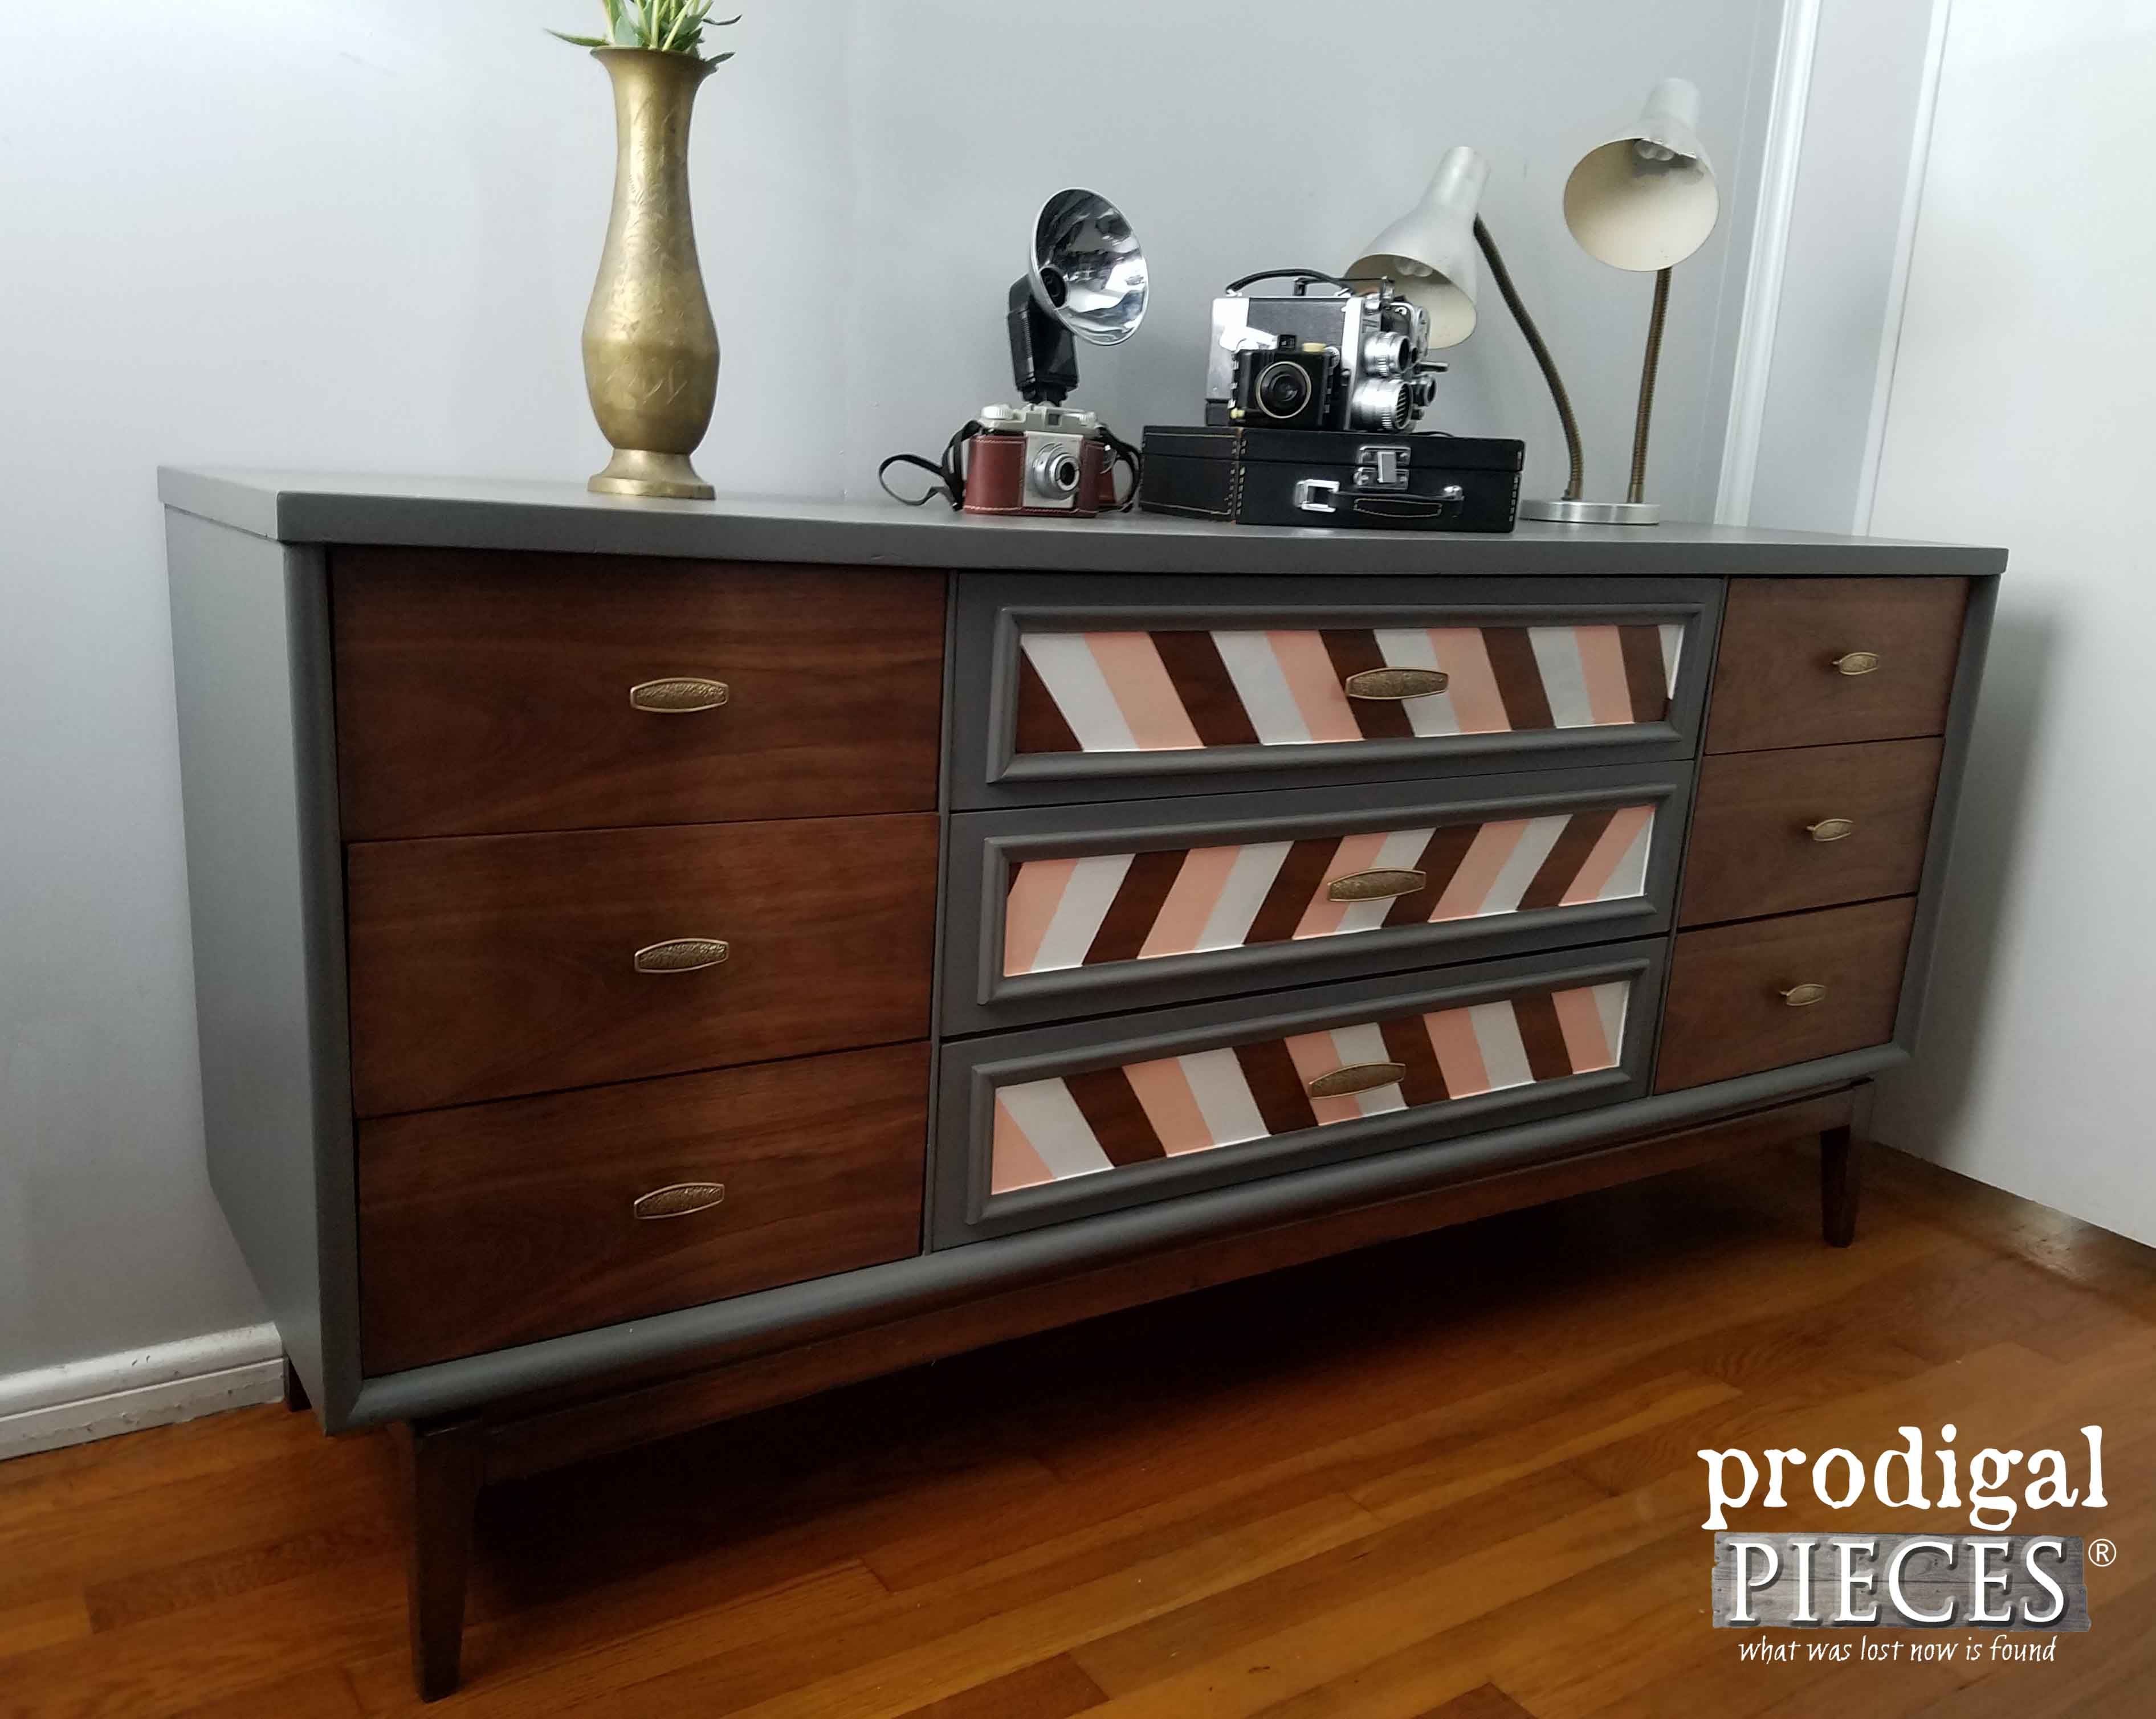 Vintage Mid Century Modern Dresser with Modern Chic Look by Prodigal Pieces | www.prodigalpieces.com